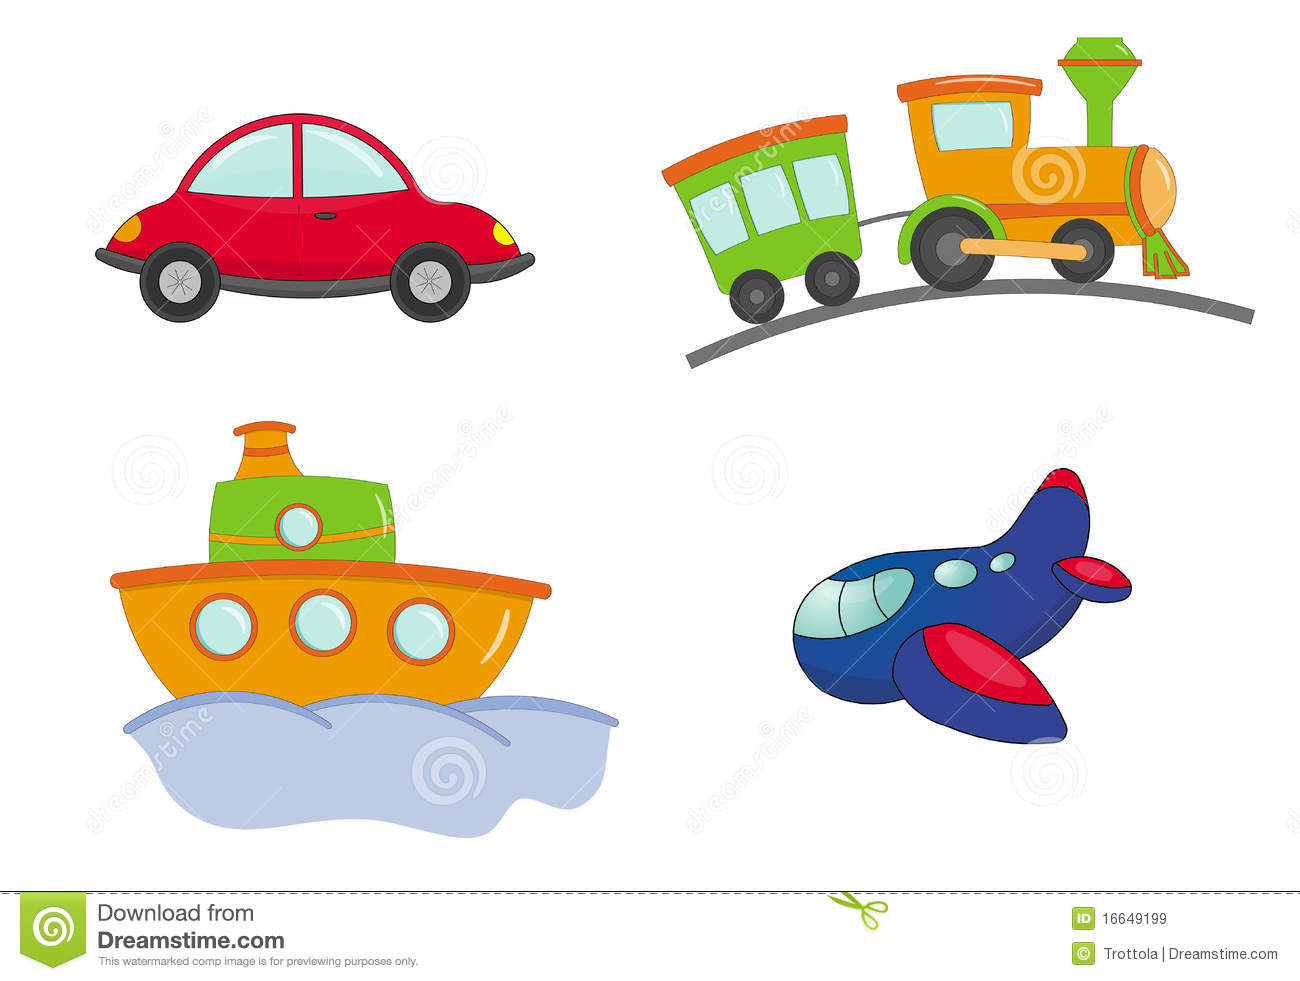 Type de dessin anim de transport images libres de droits image 16649199 - Dessin de transport ...